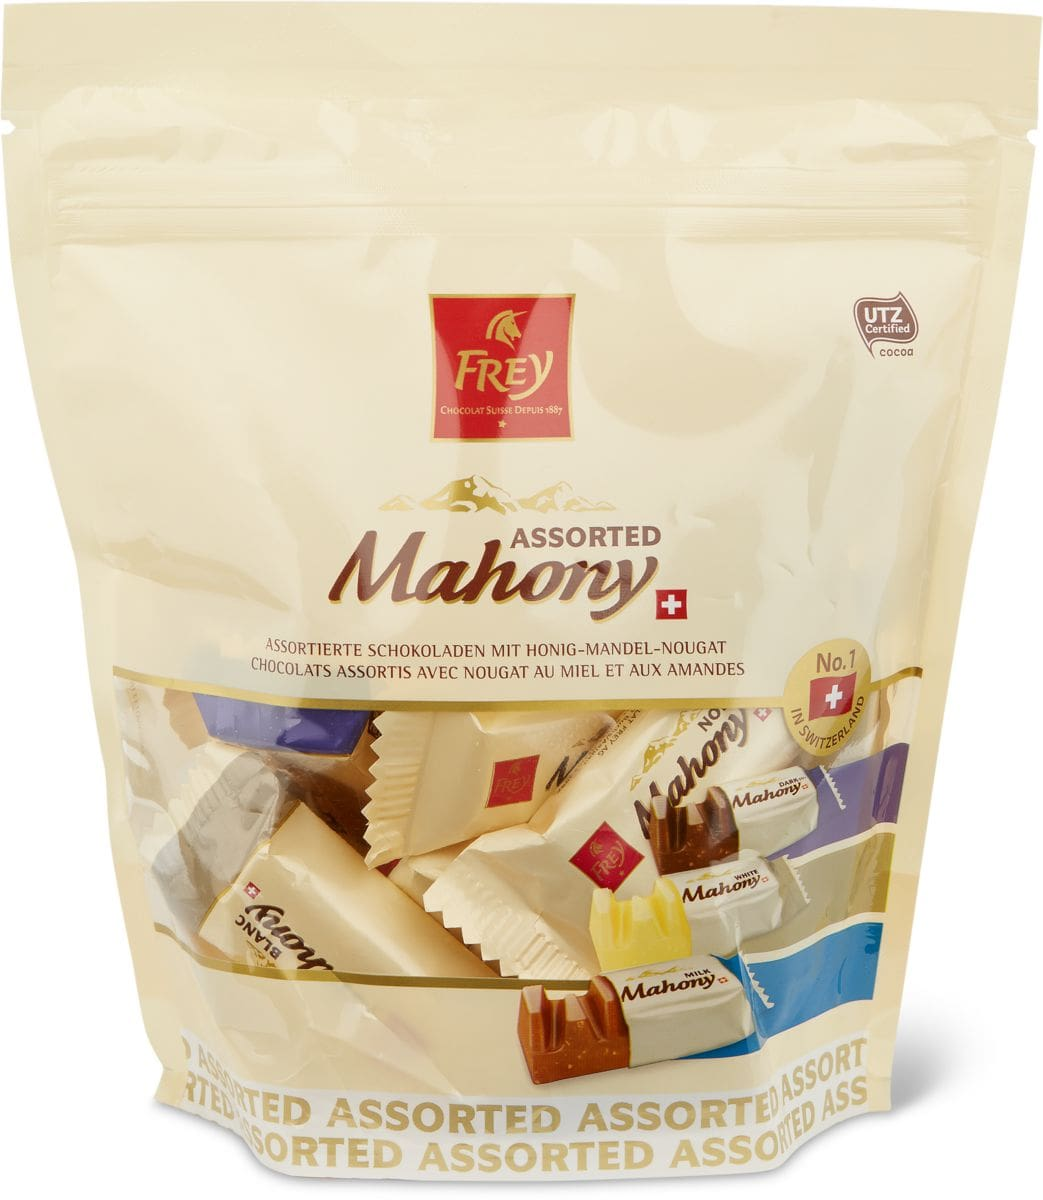 Mahony Mini assorted